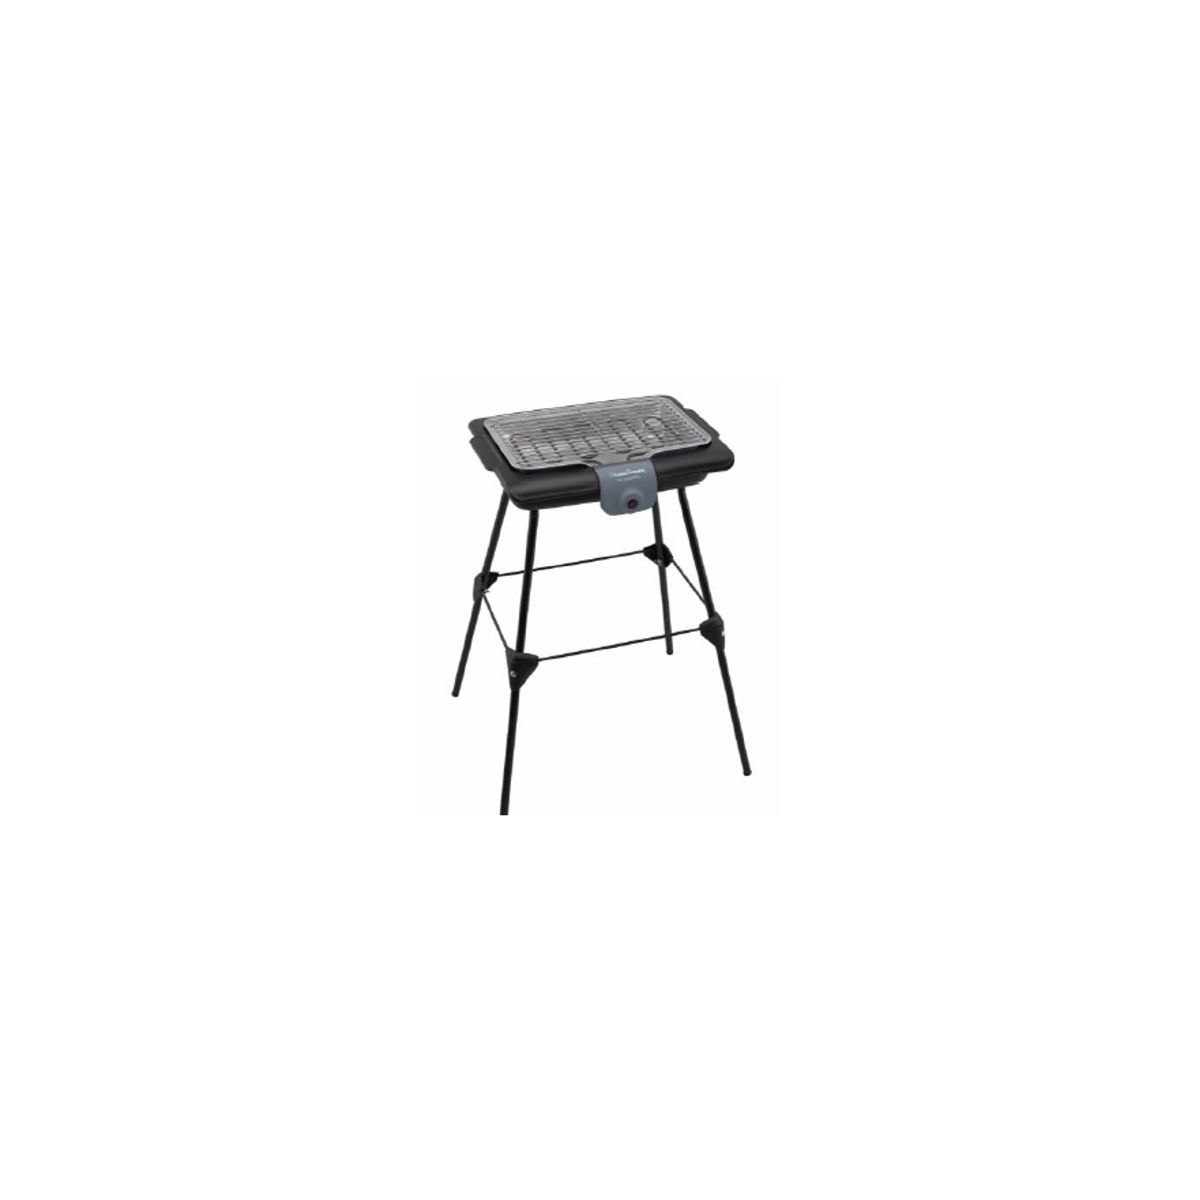 Barbec s/ pied MOULINEX Accessimo Pieds (photo)